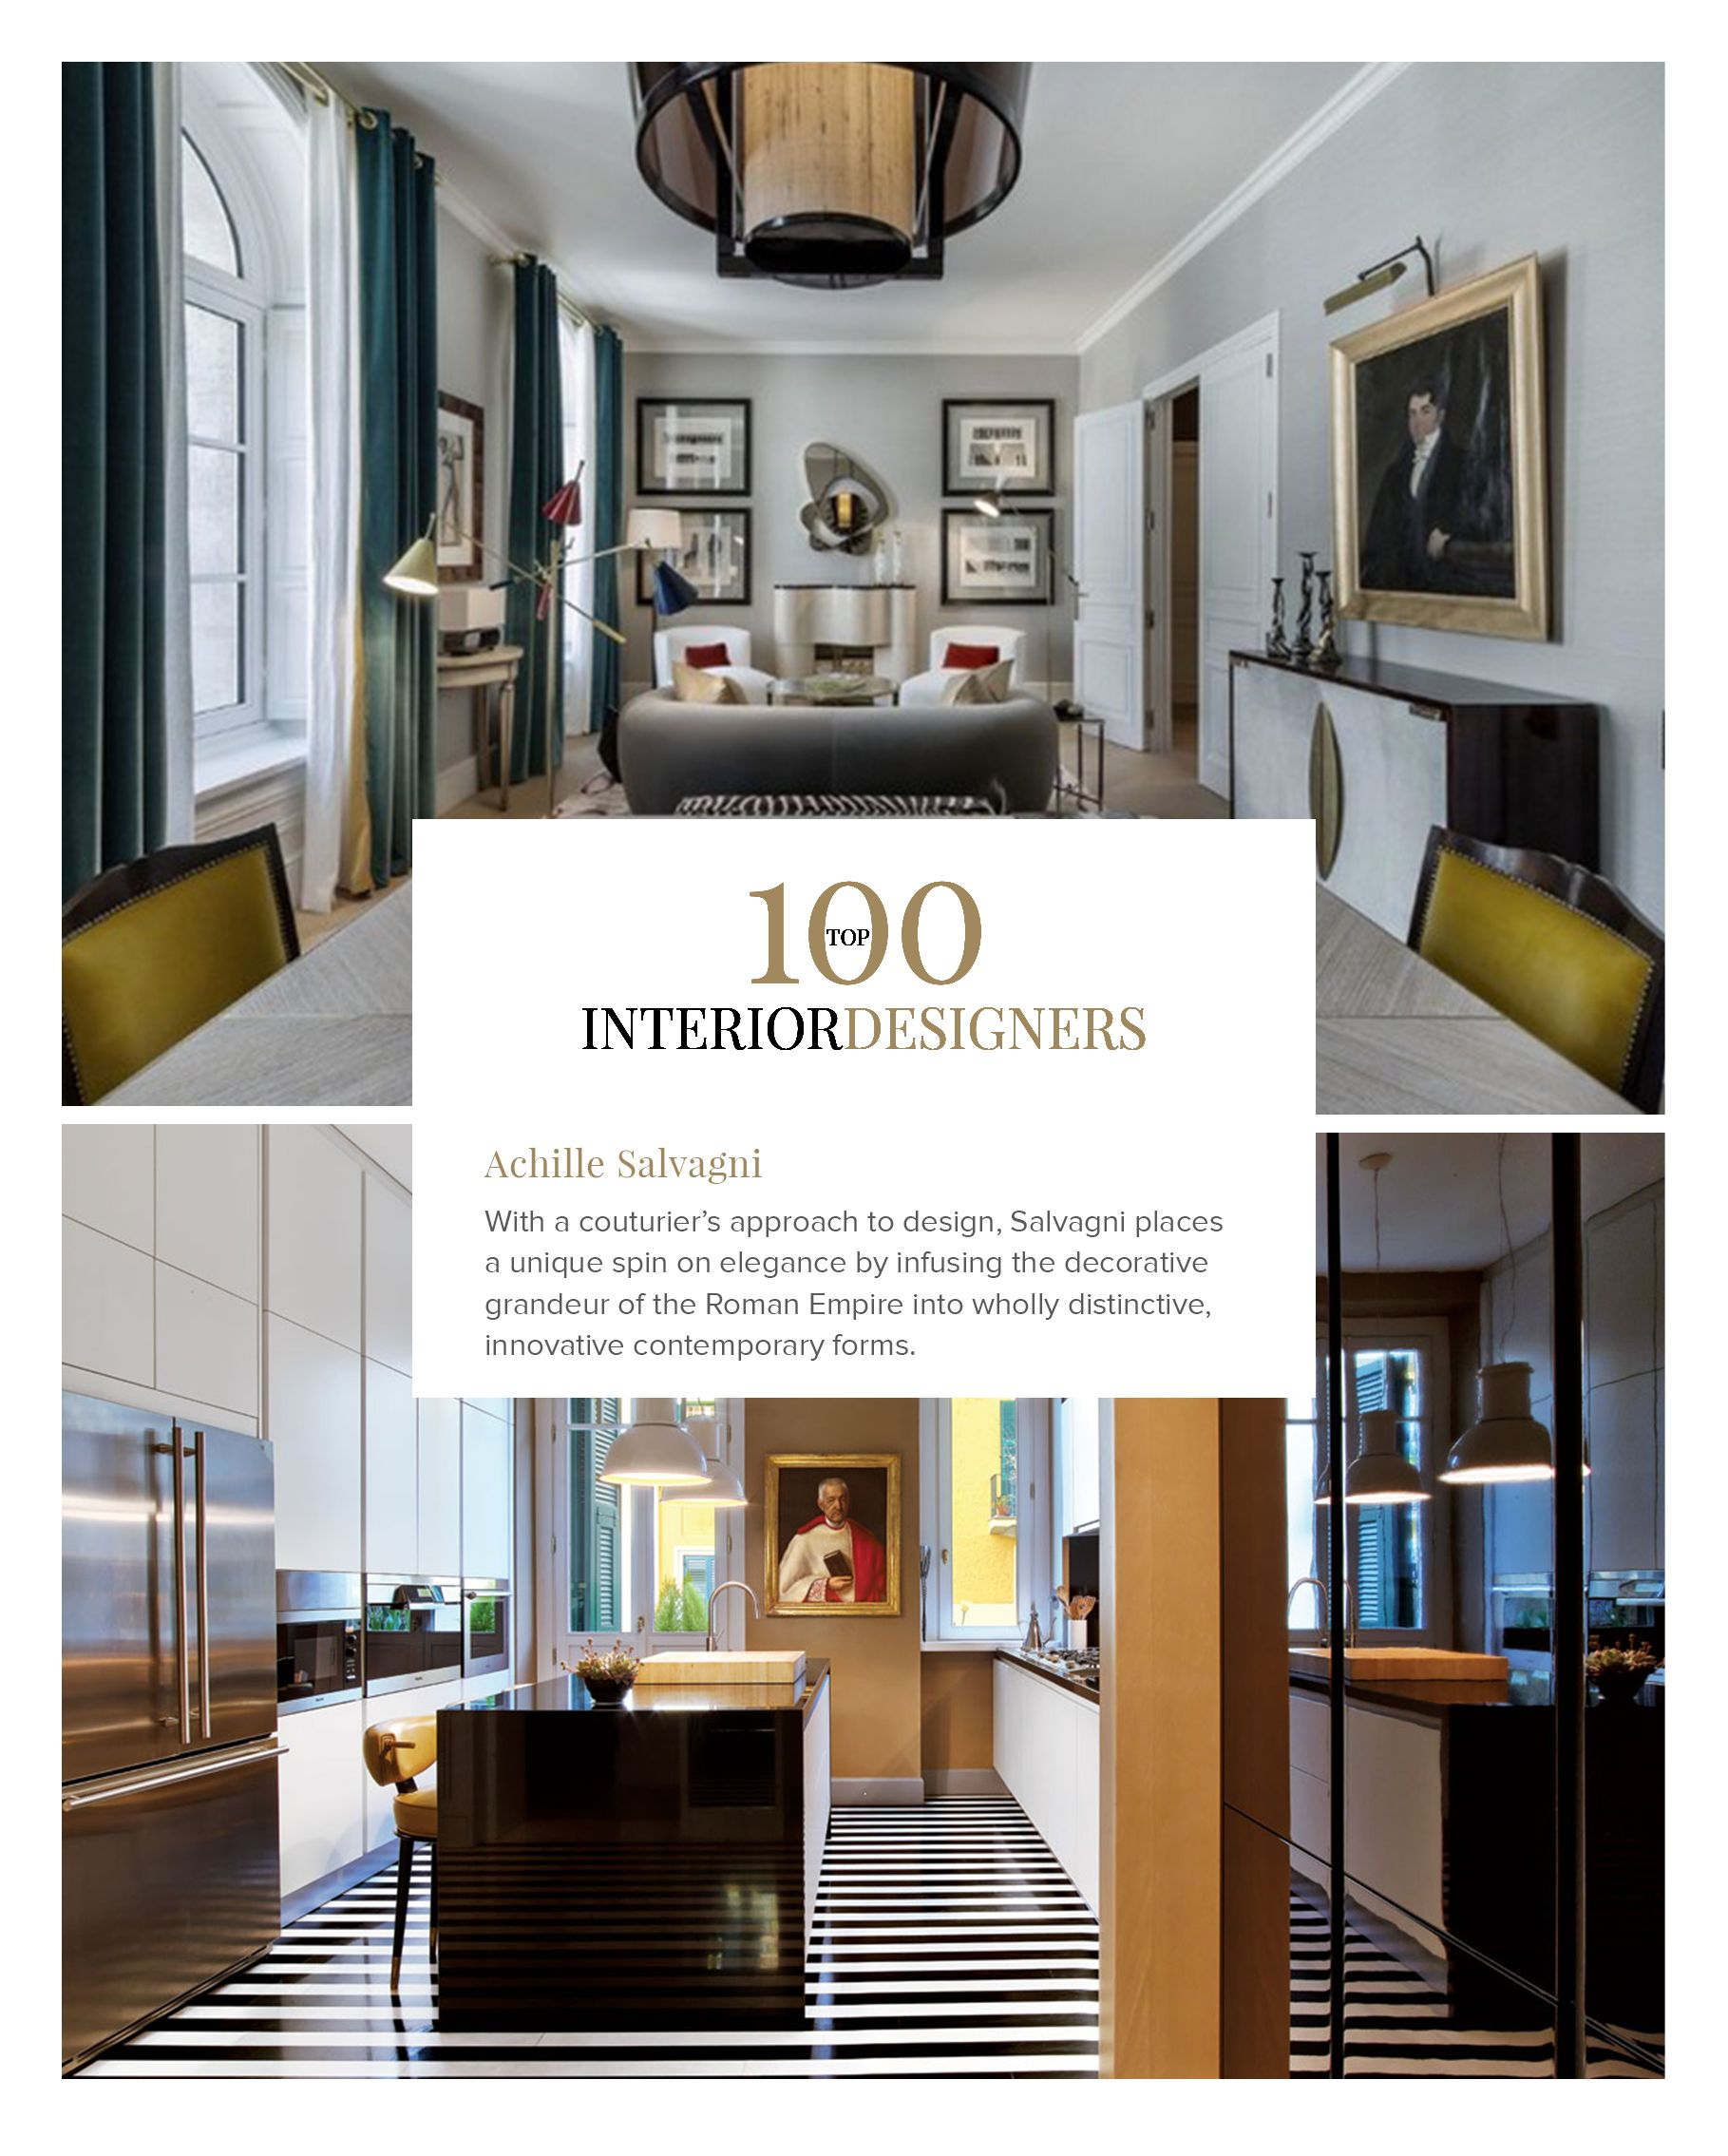 Boca do lobo and coveted magazine have selected an exclusive list featuring the best interior designers in the field